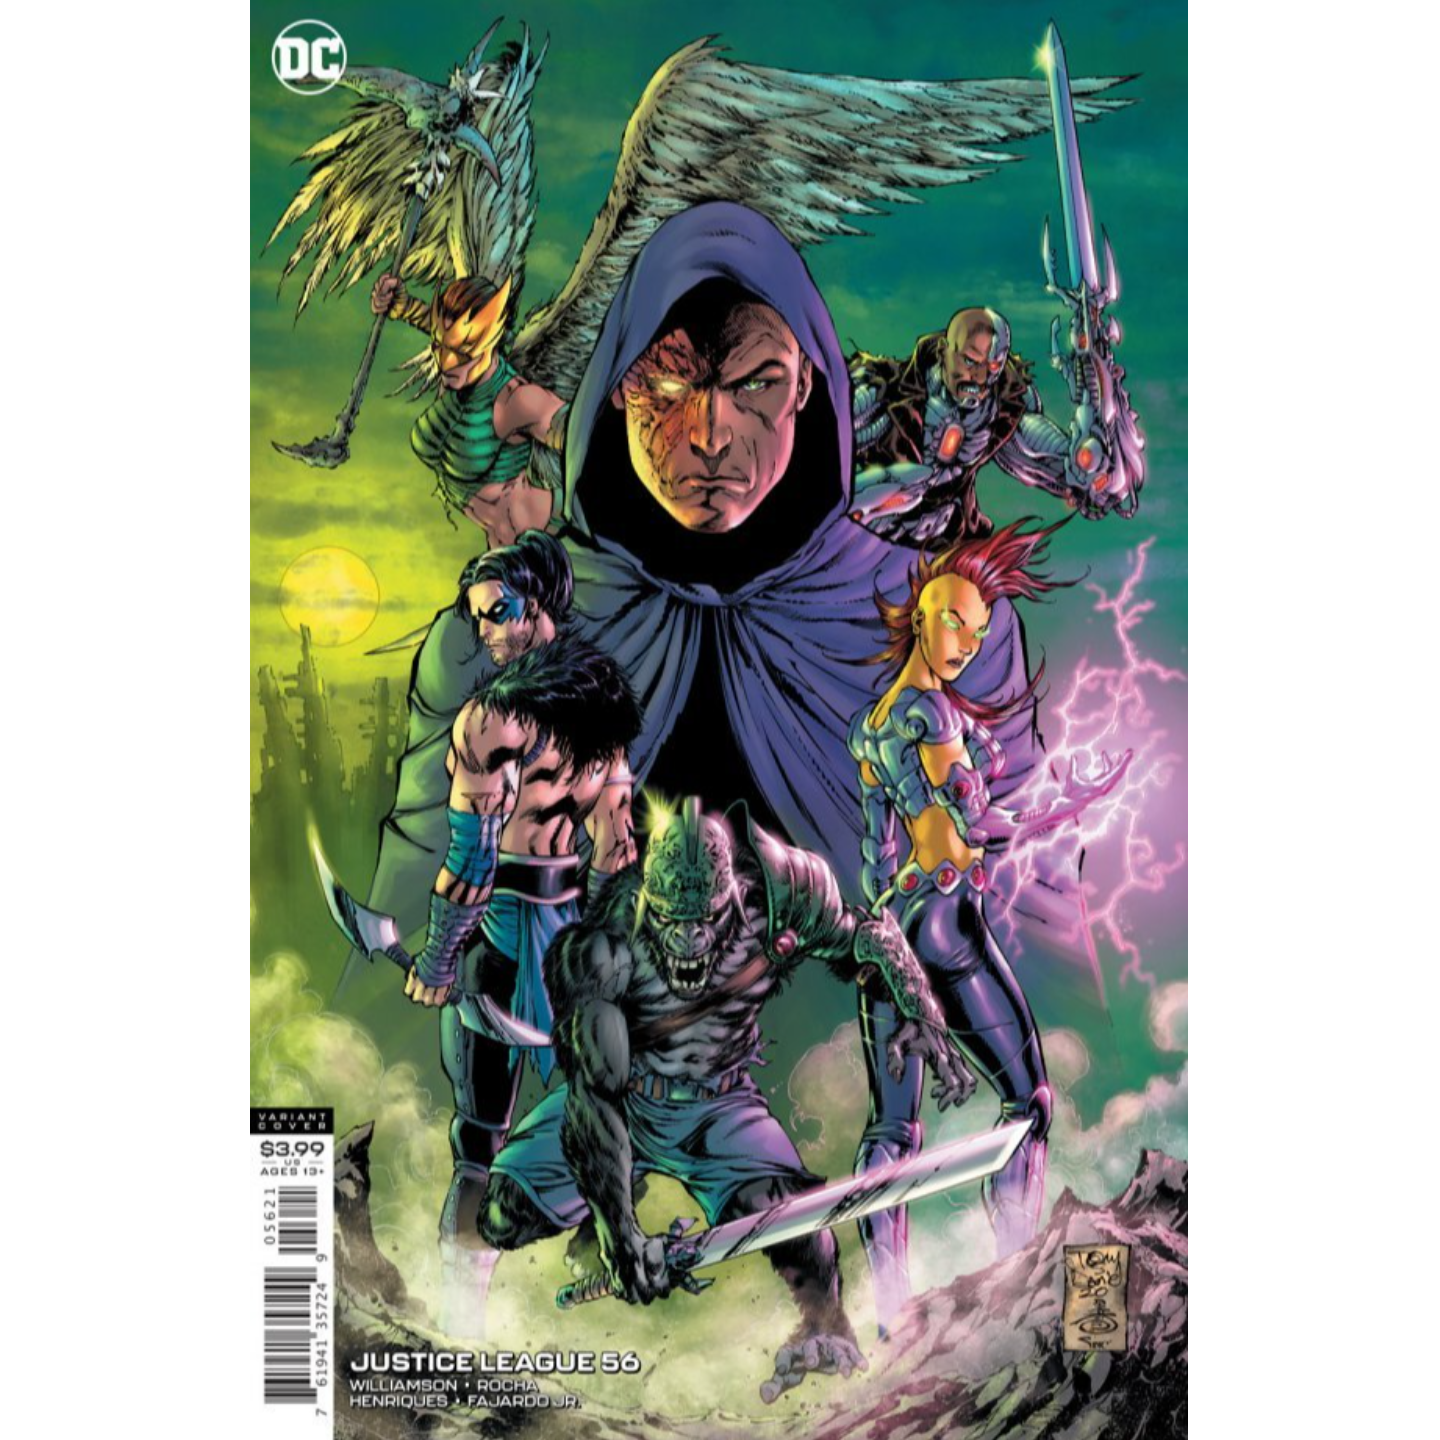 JUSTICE LEAGUE #56 CVR B TONY S DANIEL & DANNY MIKI VAR (DARK NIGHTS DEATH METAL)